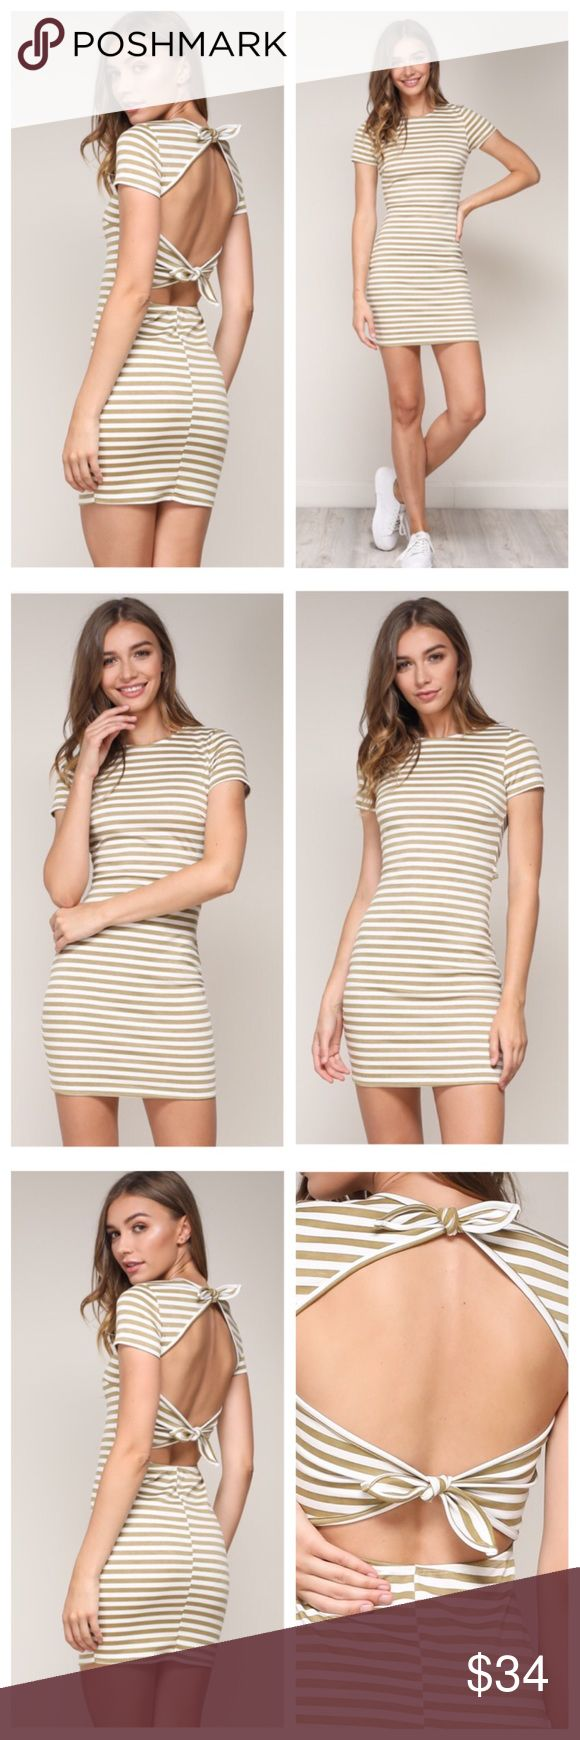 Striped Bodycon Dress, Tie-Back - Bodycon Mini Dress - Tie Back Detail - Soft and Comfortable - *This dress runs True to Size* - MADE IN USA Dresses Mini